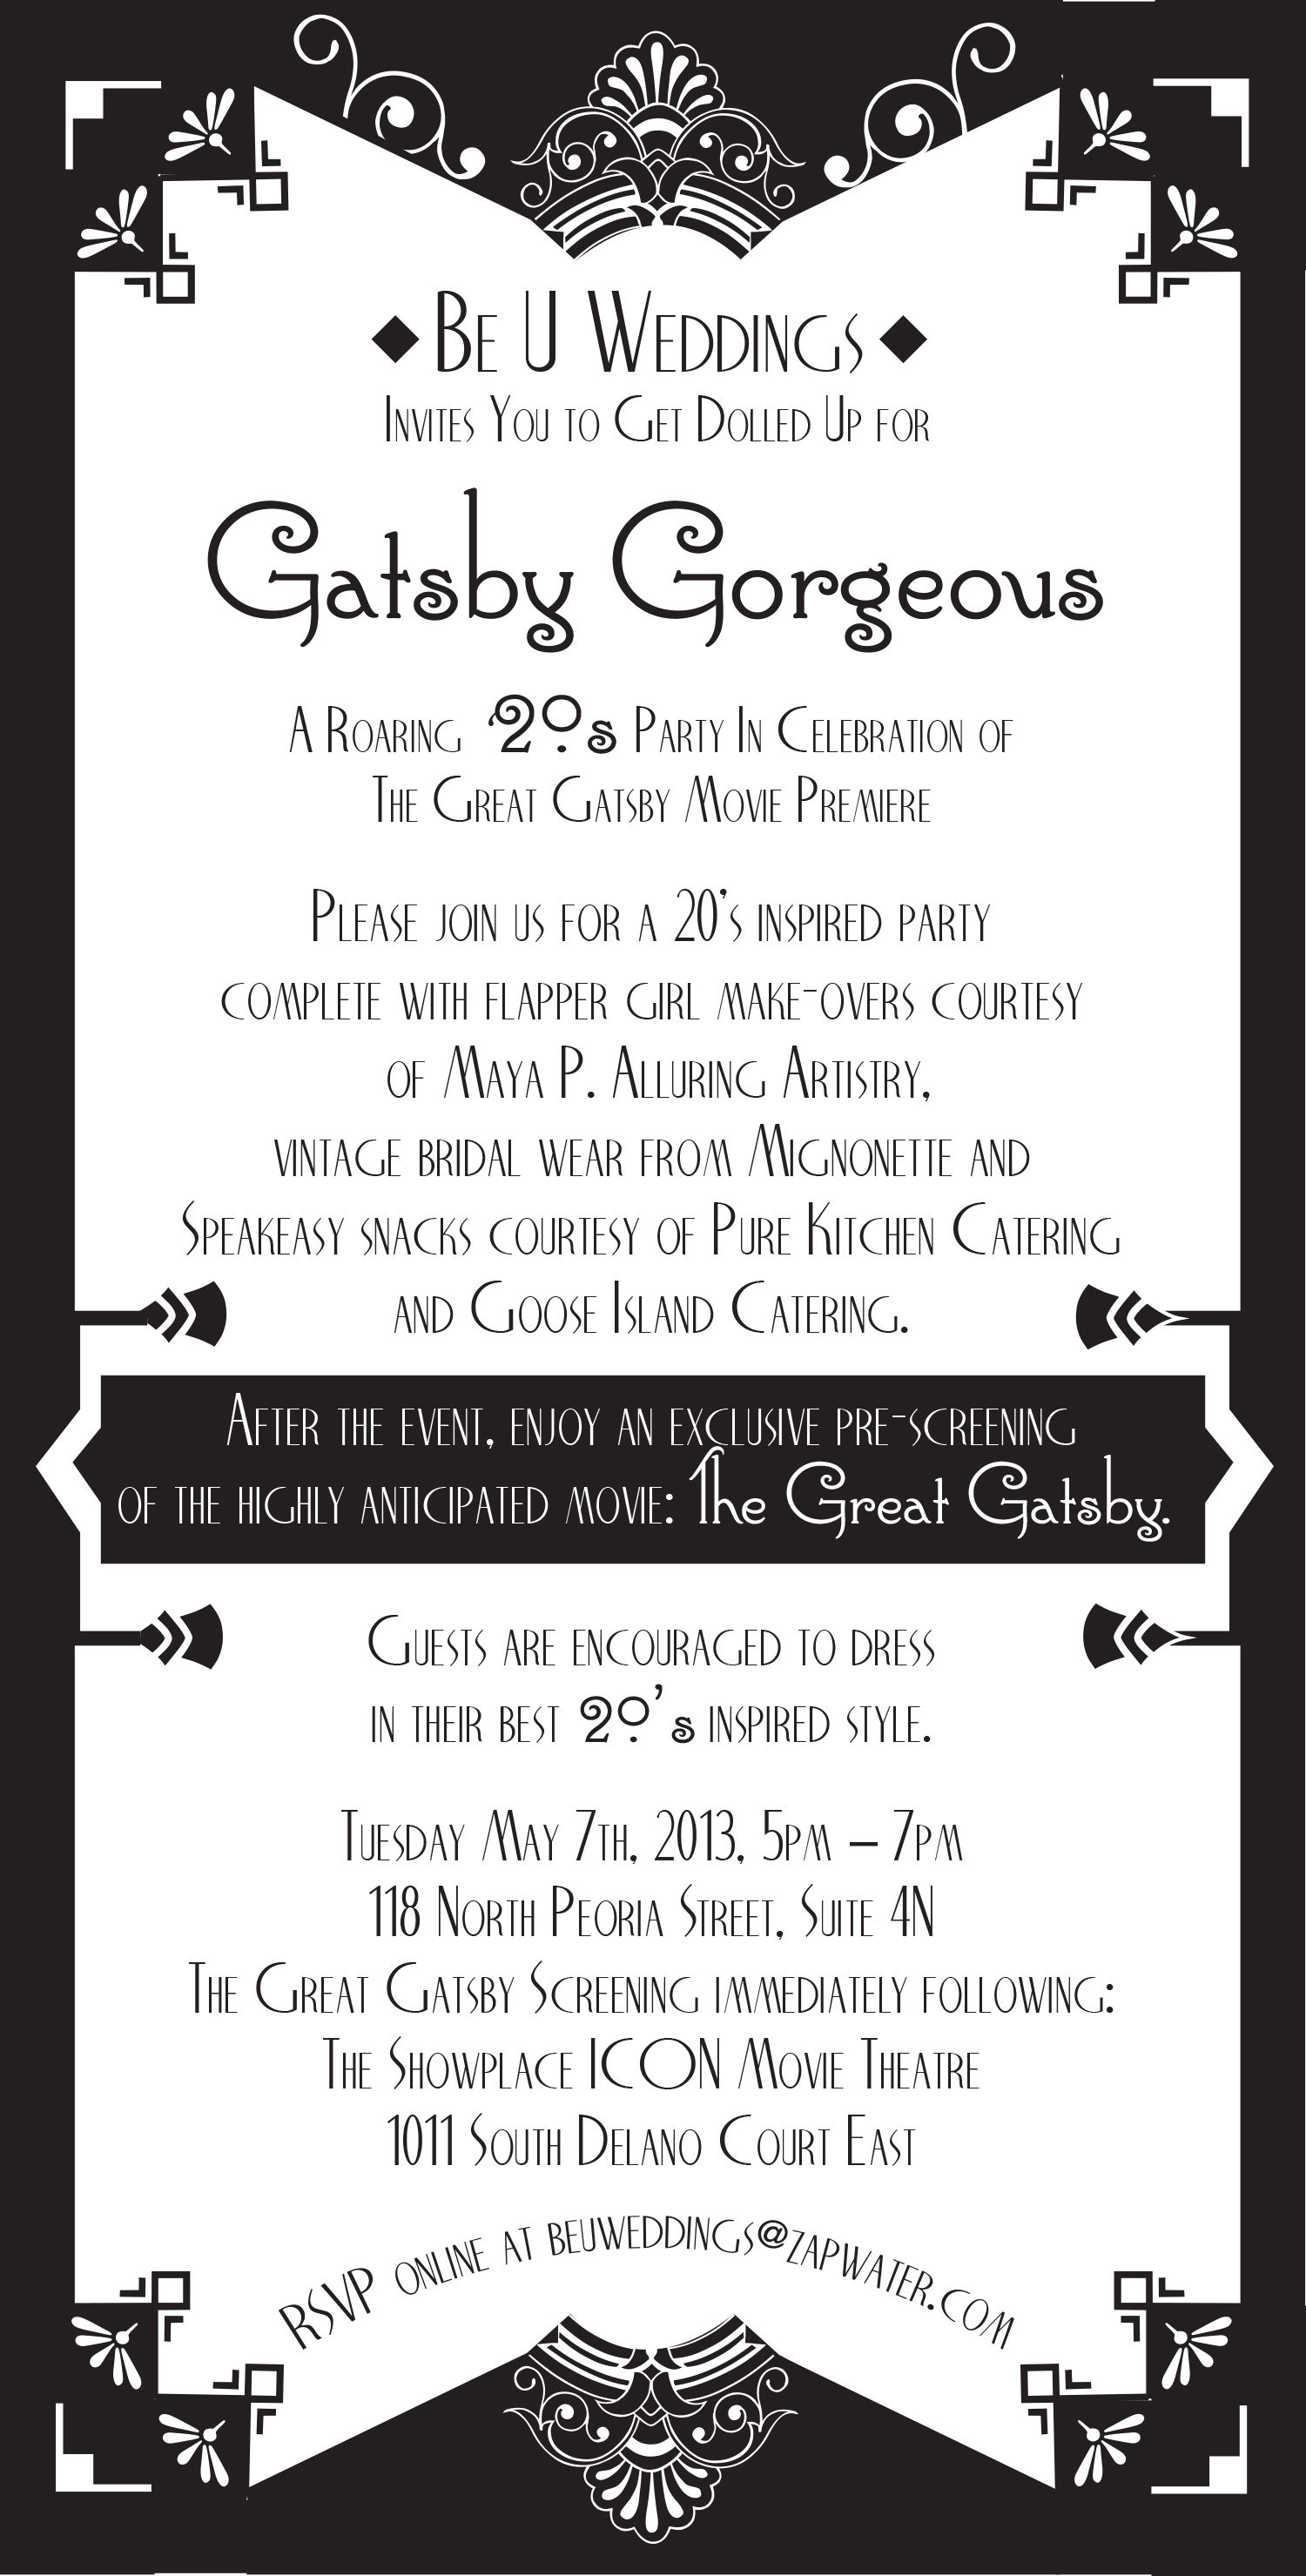 Gatsby themed party invitation party invitation wording gatsby themed party invitation party invitation wording samples also great gatsby party stopboris Choice Image